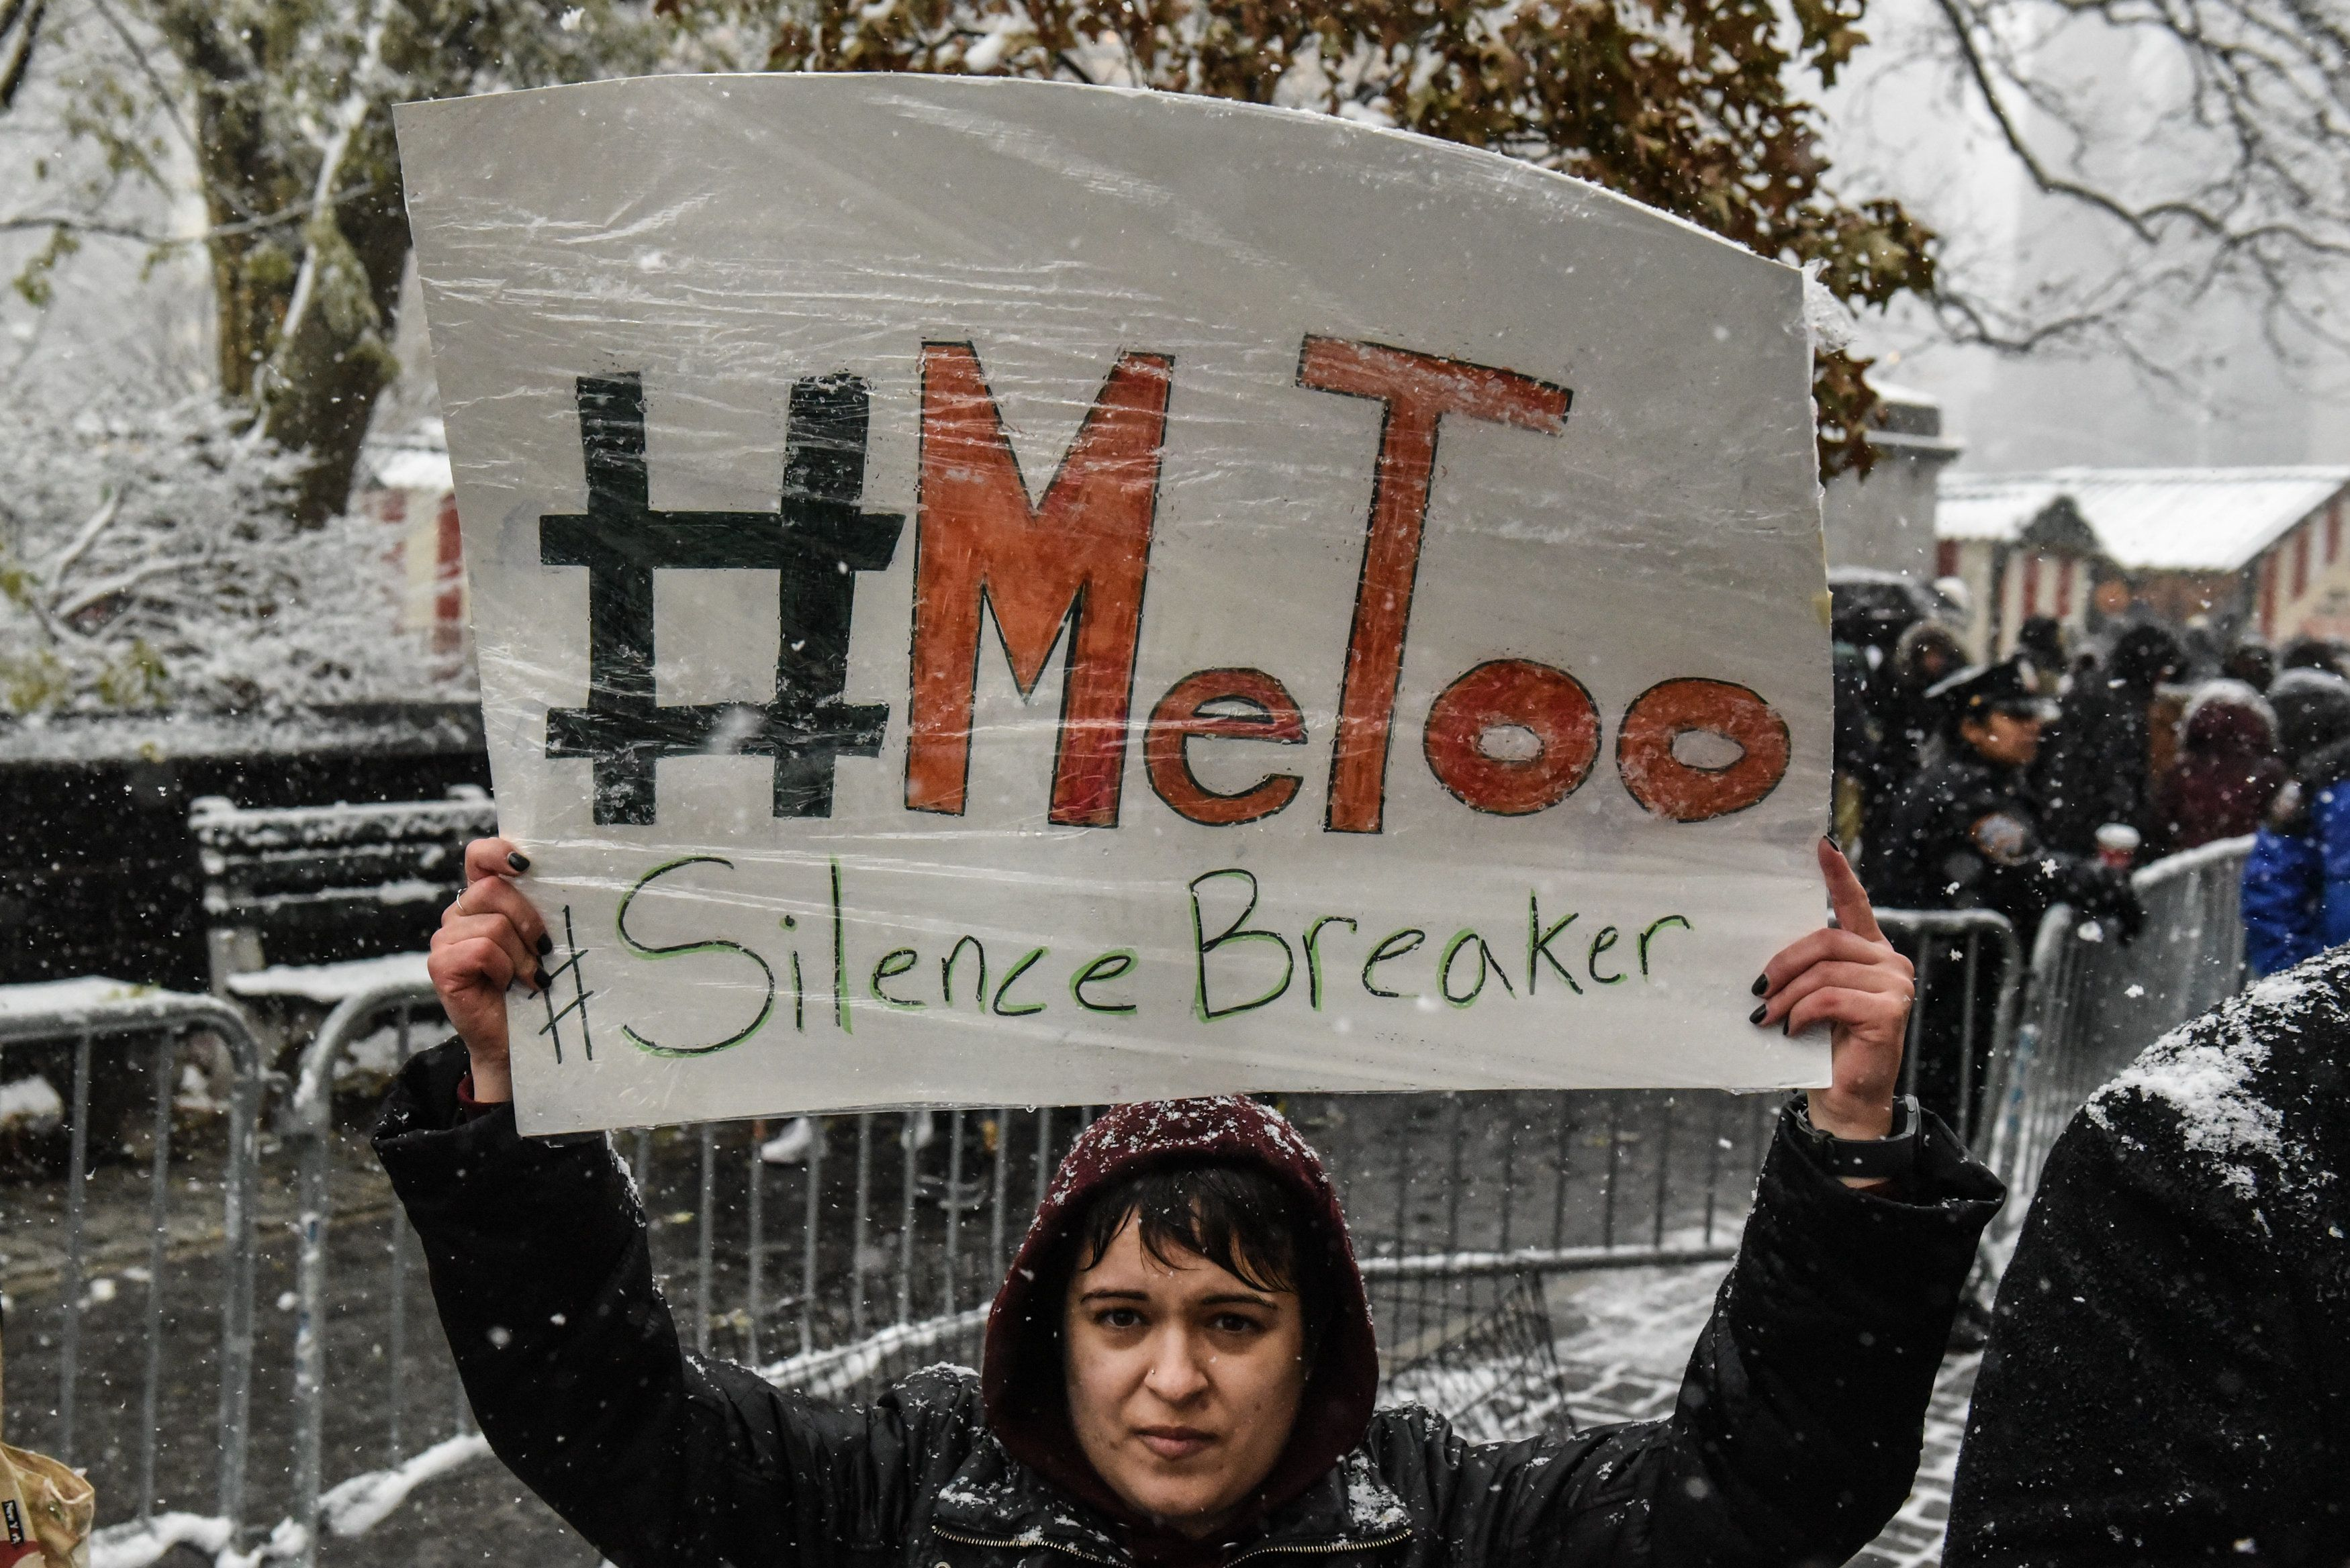 NEW YORK, NY - DECEMBER 09: People carry signs addressing the issue of sexual harassment at a #MeToo rally outside of Trump International Hotel on December 9, 2017 in New York City. (Photo by Stephanie Keith/Getty Images)